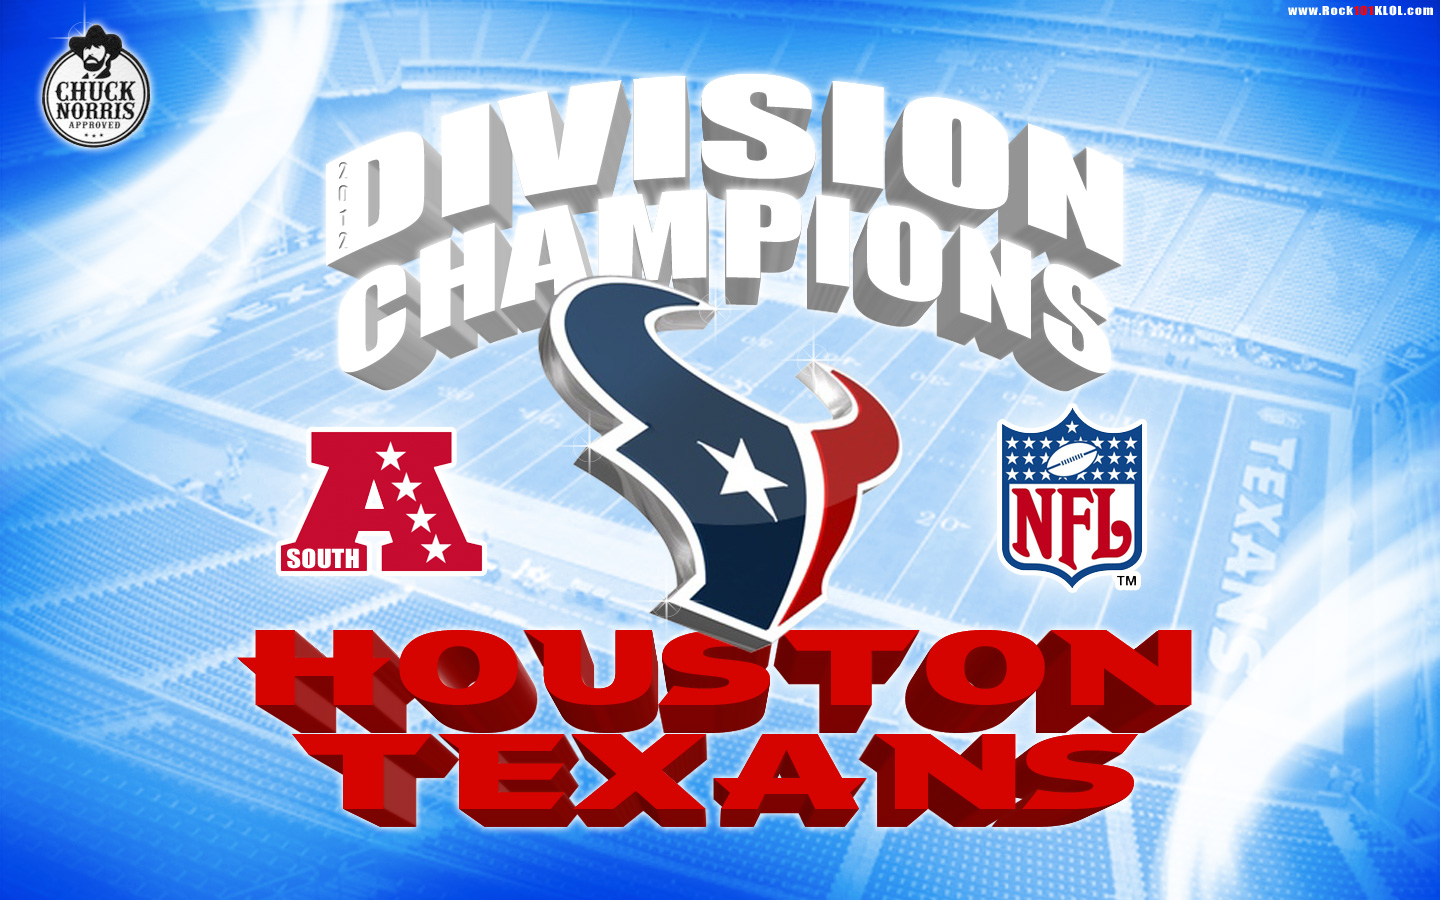 AFC South Division Champion Wallpaper   Houston Texans Message Boards 1440x900